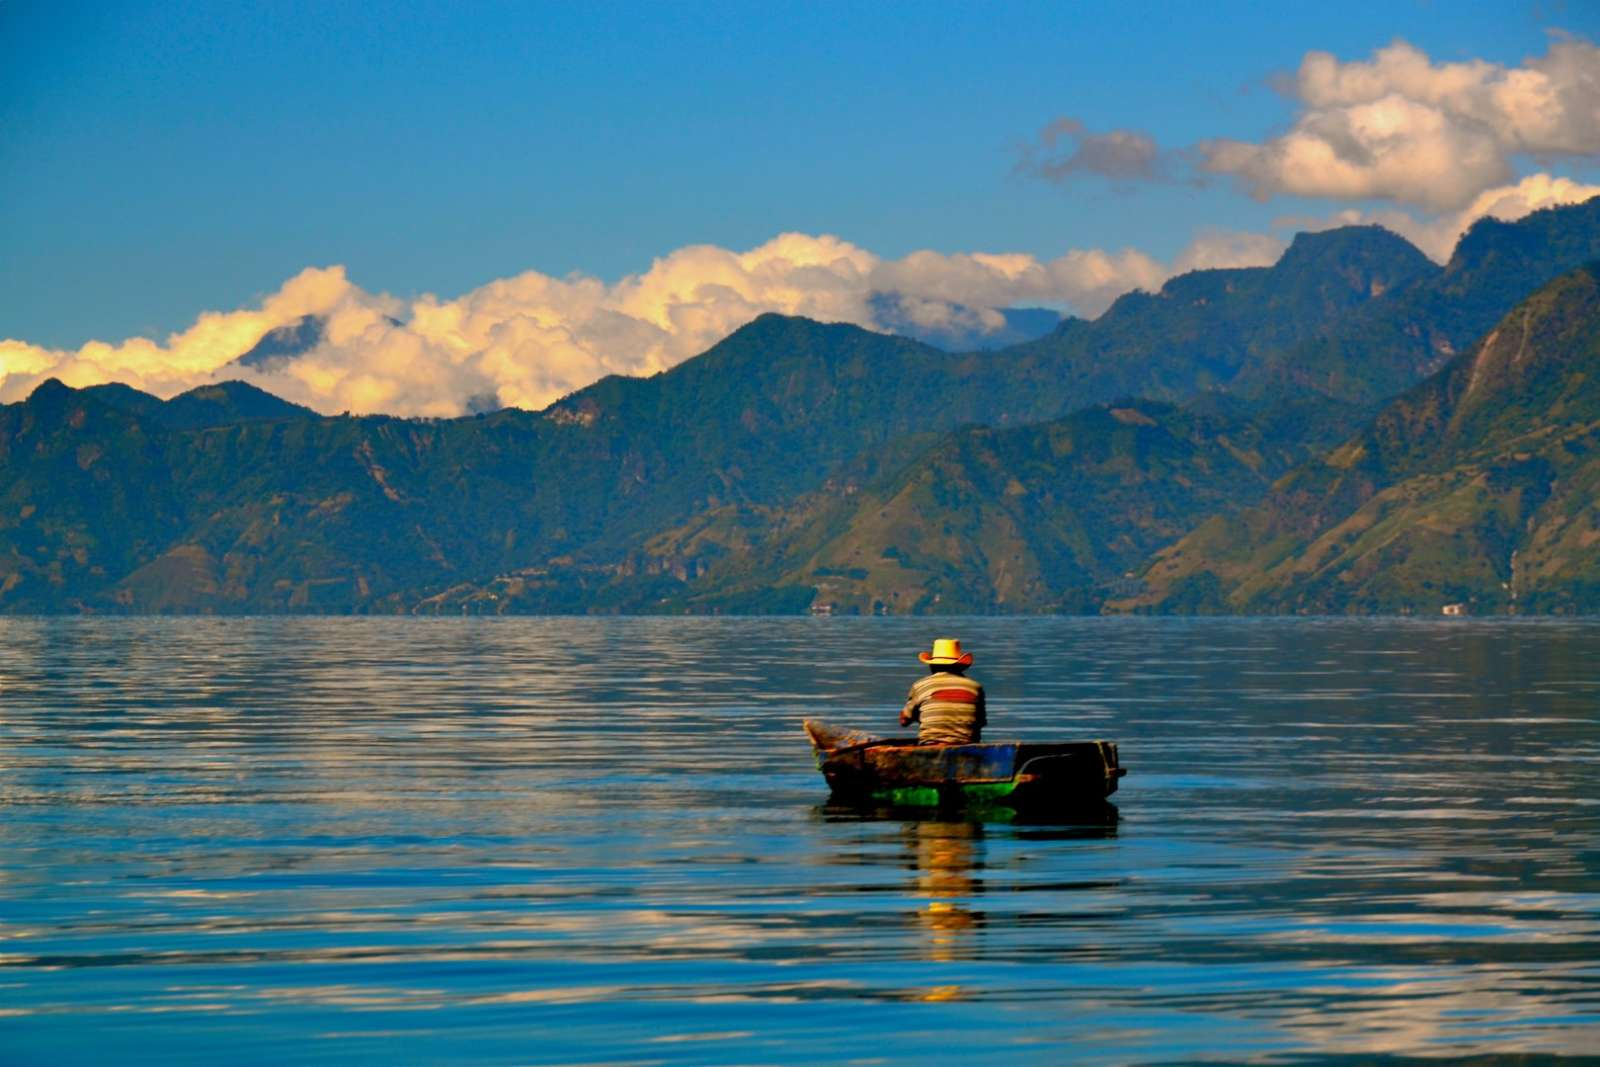 Solitary small boat on Lake Atitlan, Guatemala